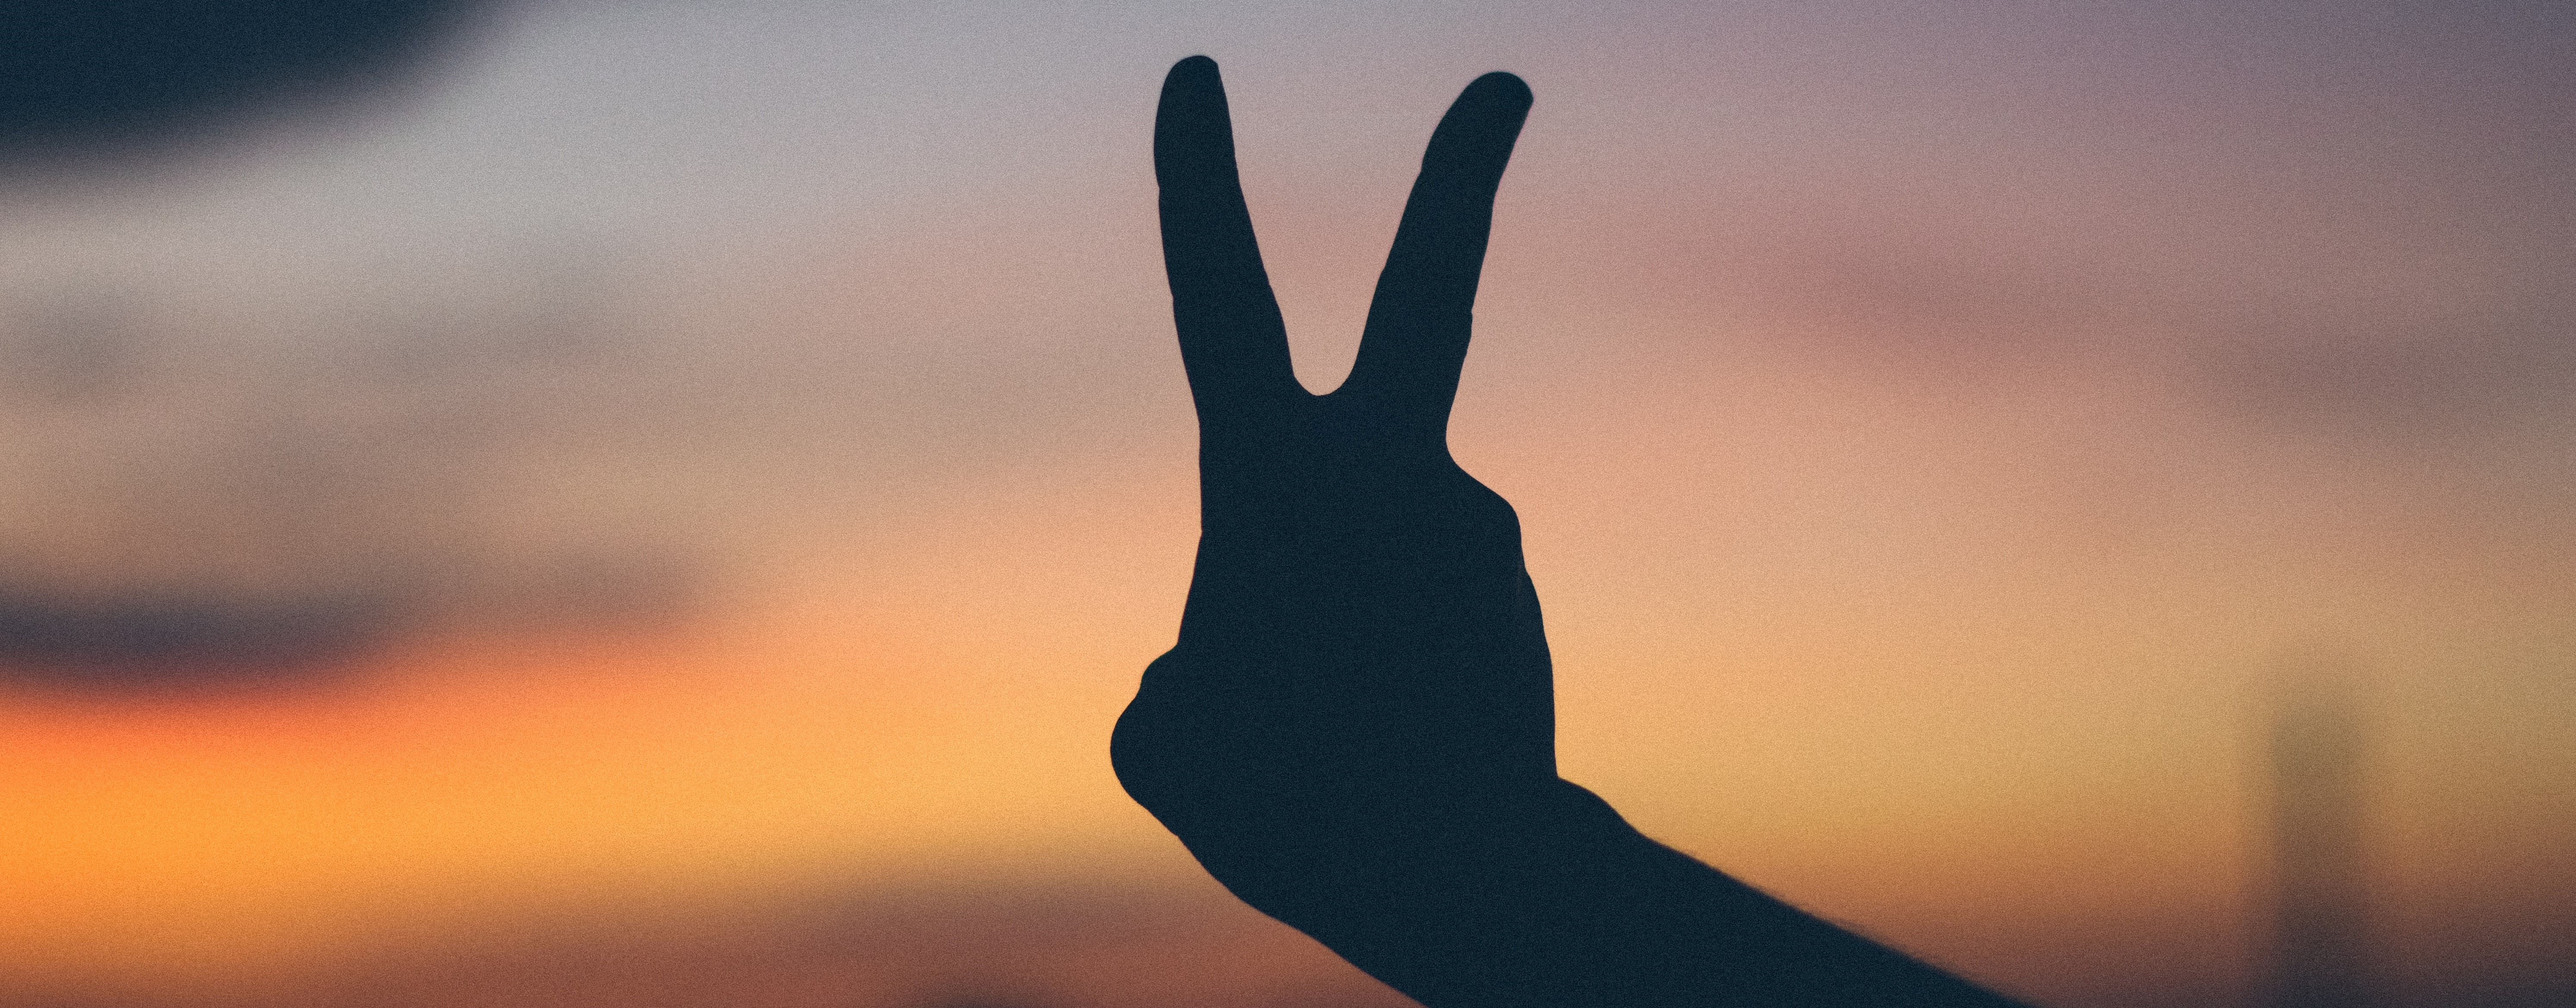 hand showing two fingers as a sign of peace